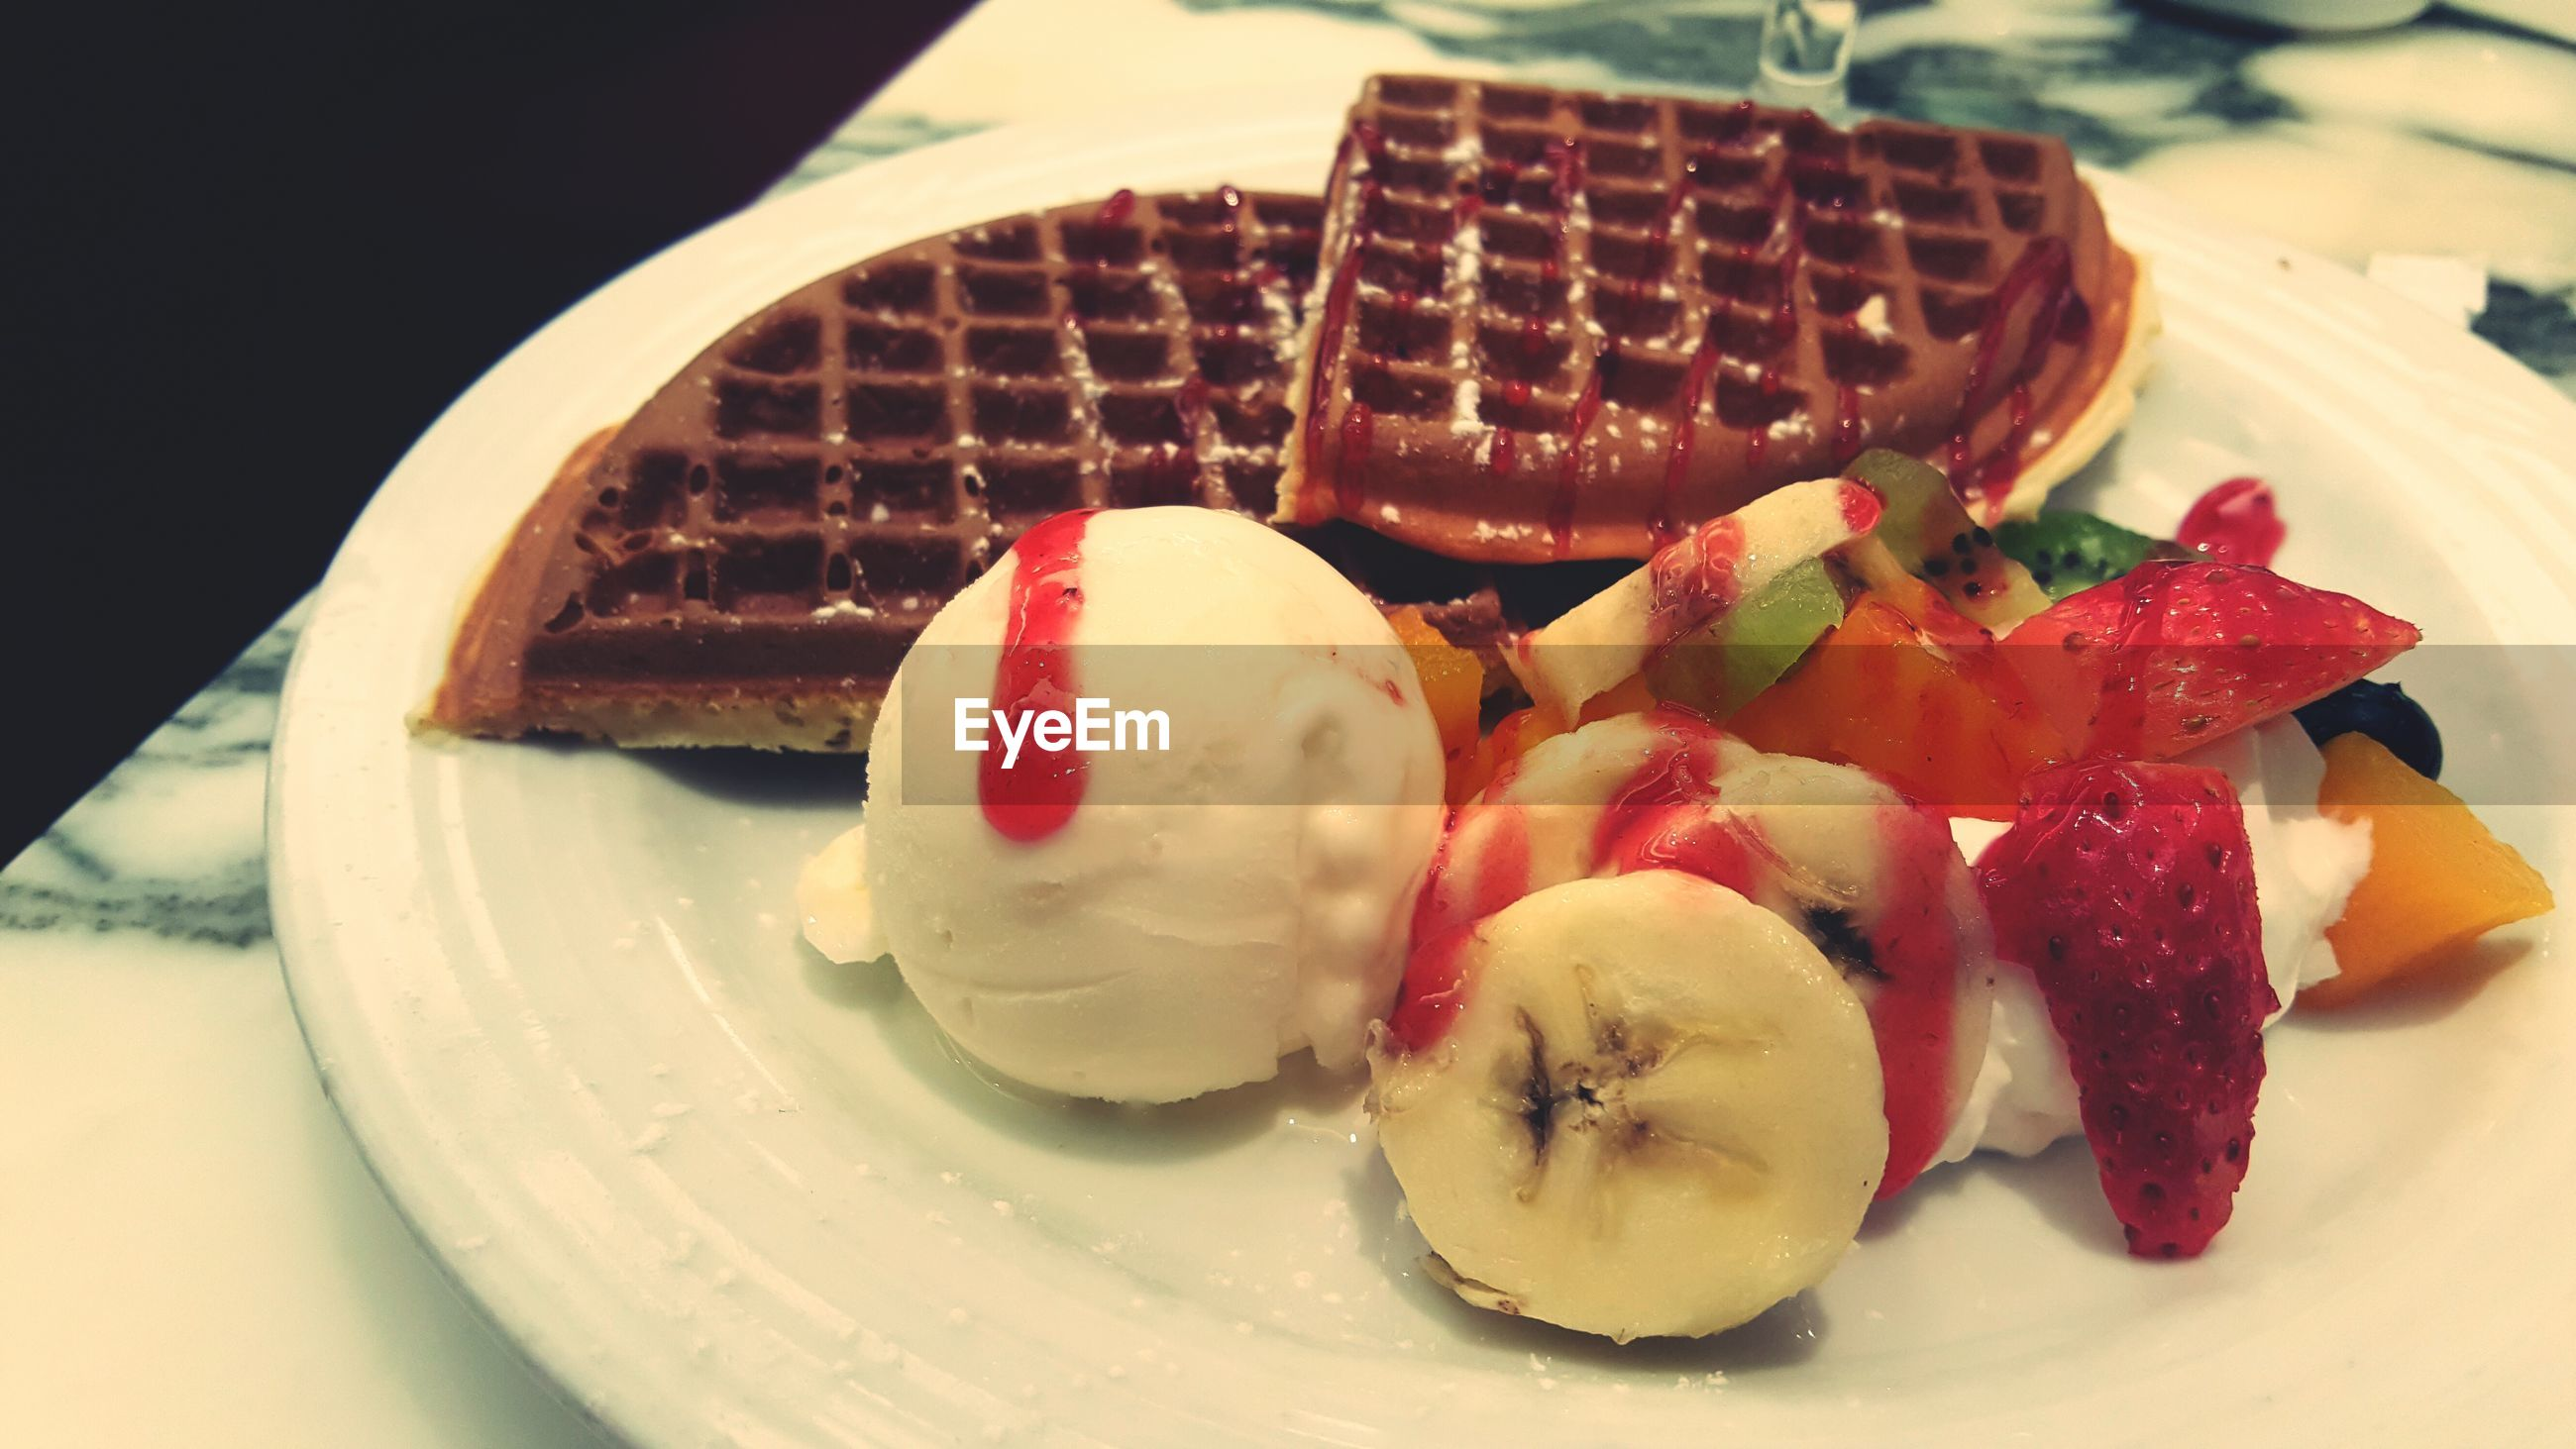 food and drink, sweet food, indoors, food, dessert, freshness, still life, indulgence, ready-to-eat, plate, unhealthy eating, table, cake, close-up, temptation, chocolate, strawberry, high angle view, fruit, ice cream